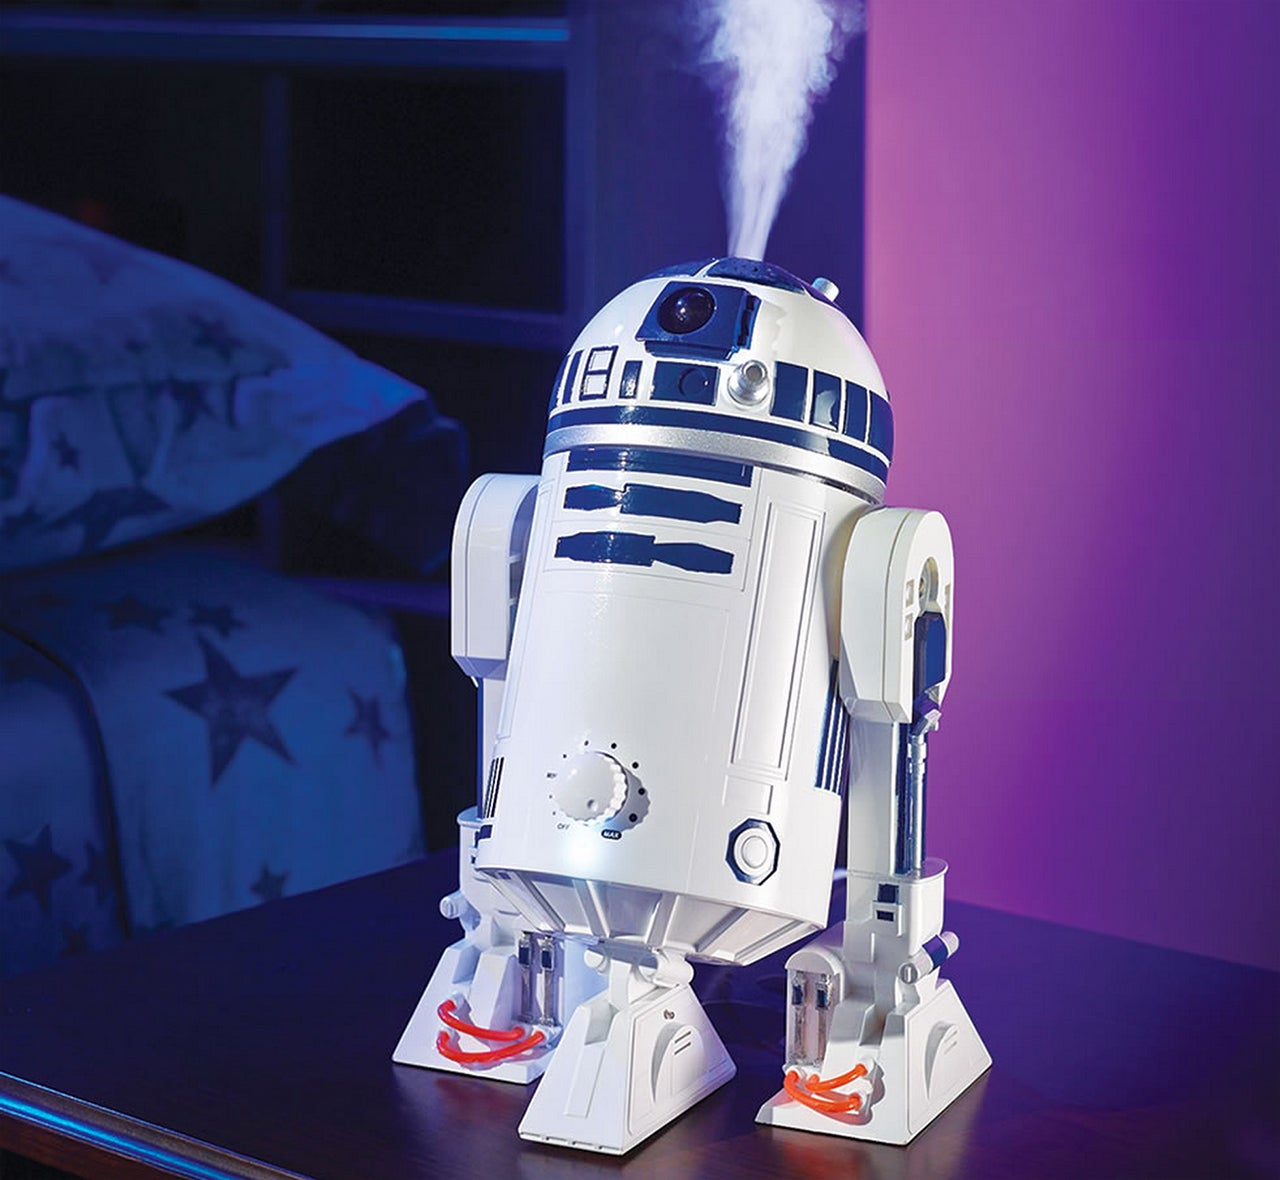 Is Either Really Angry Or An Adorable Humidifier Gizmodo Australia #2B2D71